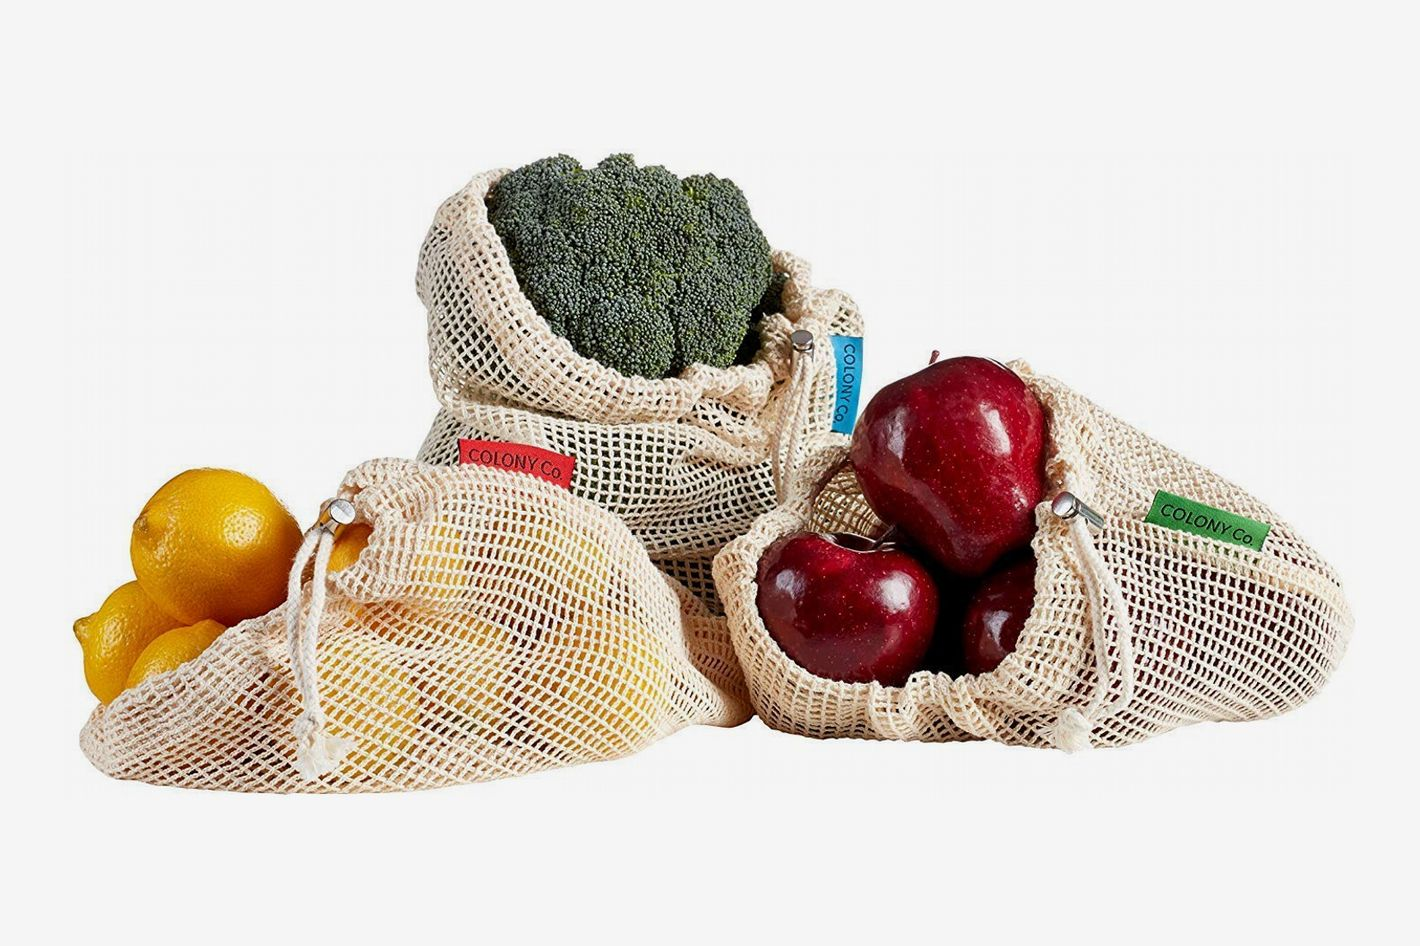 Colony Co. Reusable Produce Bags